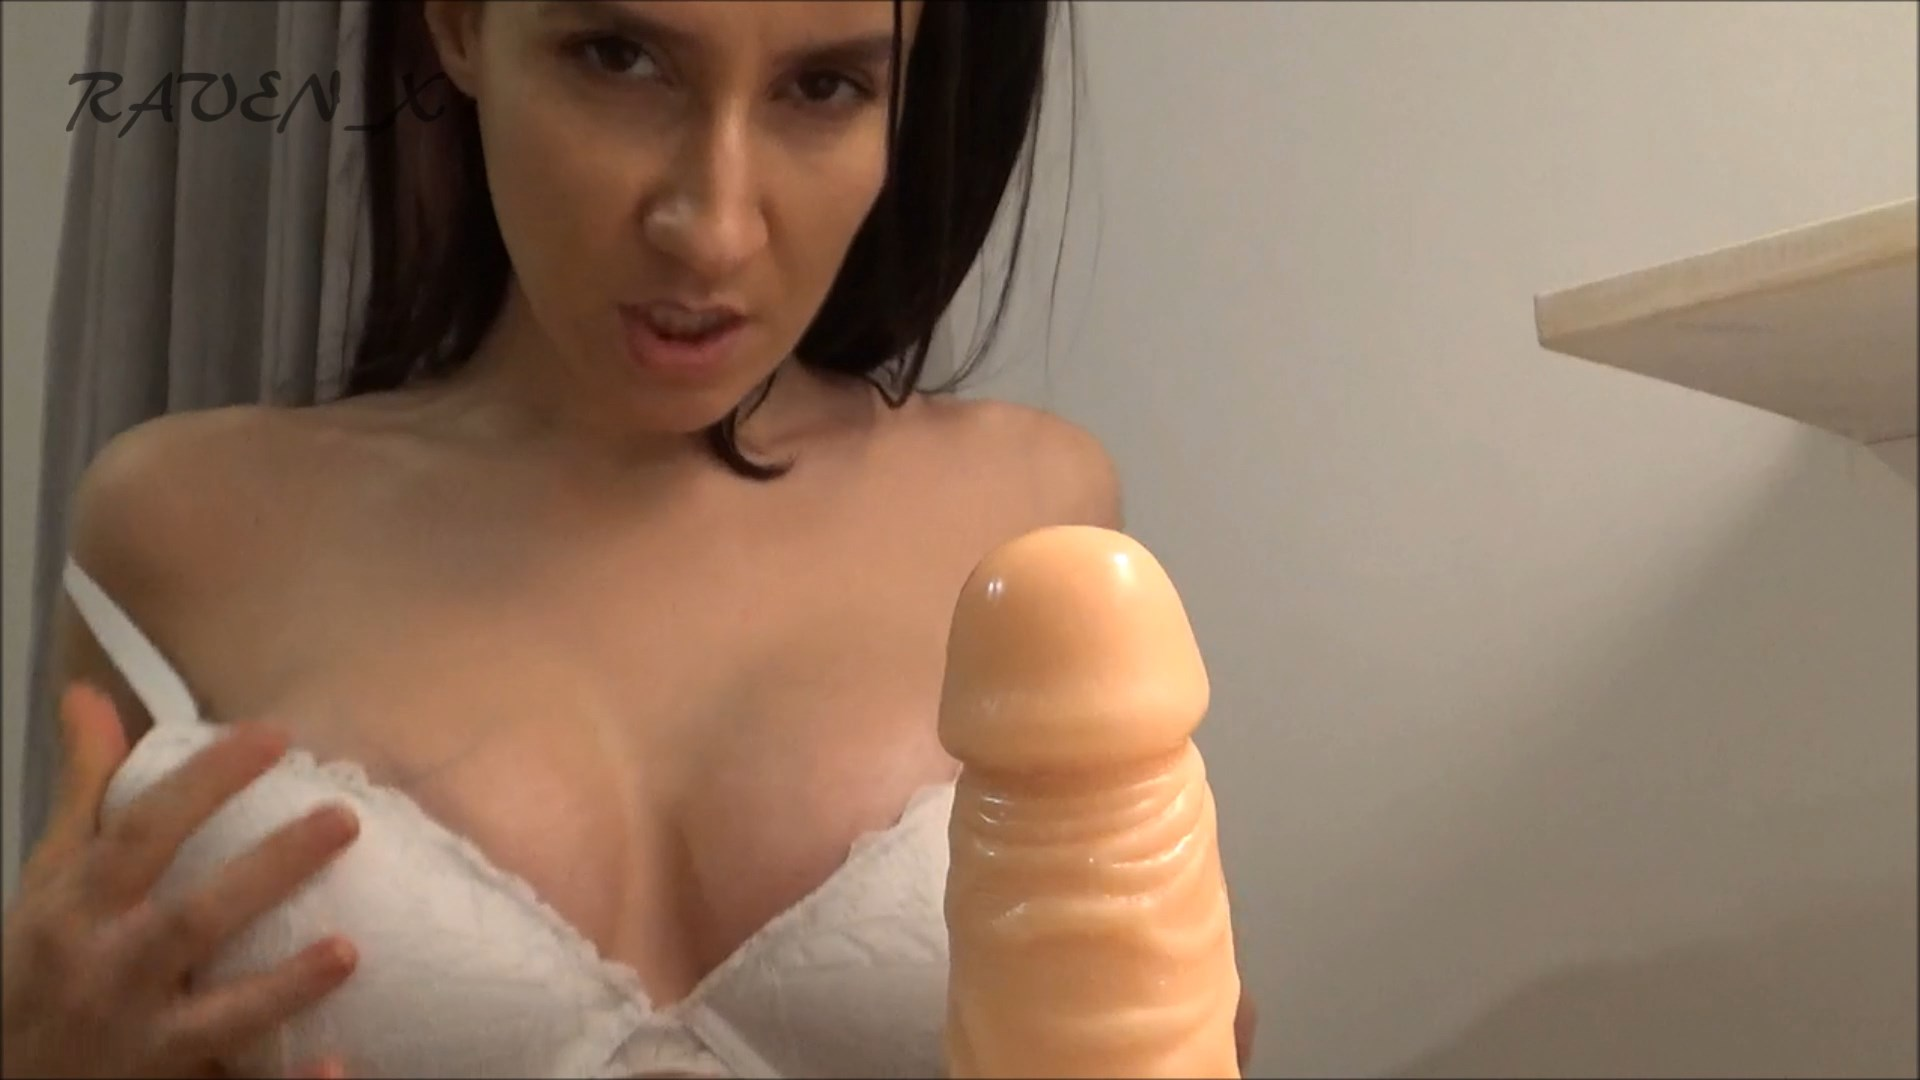 HORNY BOSS WANTS YOUR COCK HD (POV TABOO ROLE PLAY) - Raven